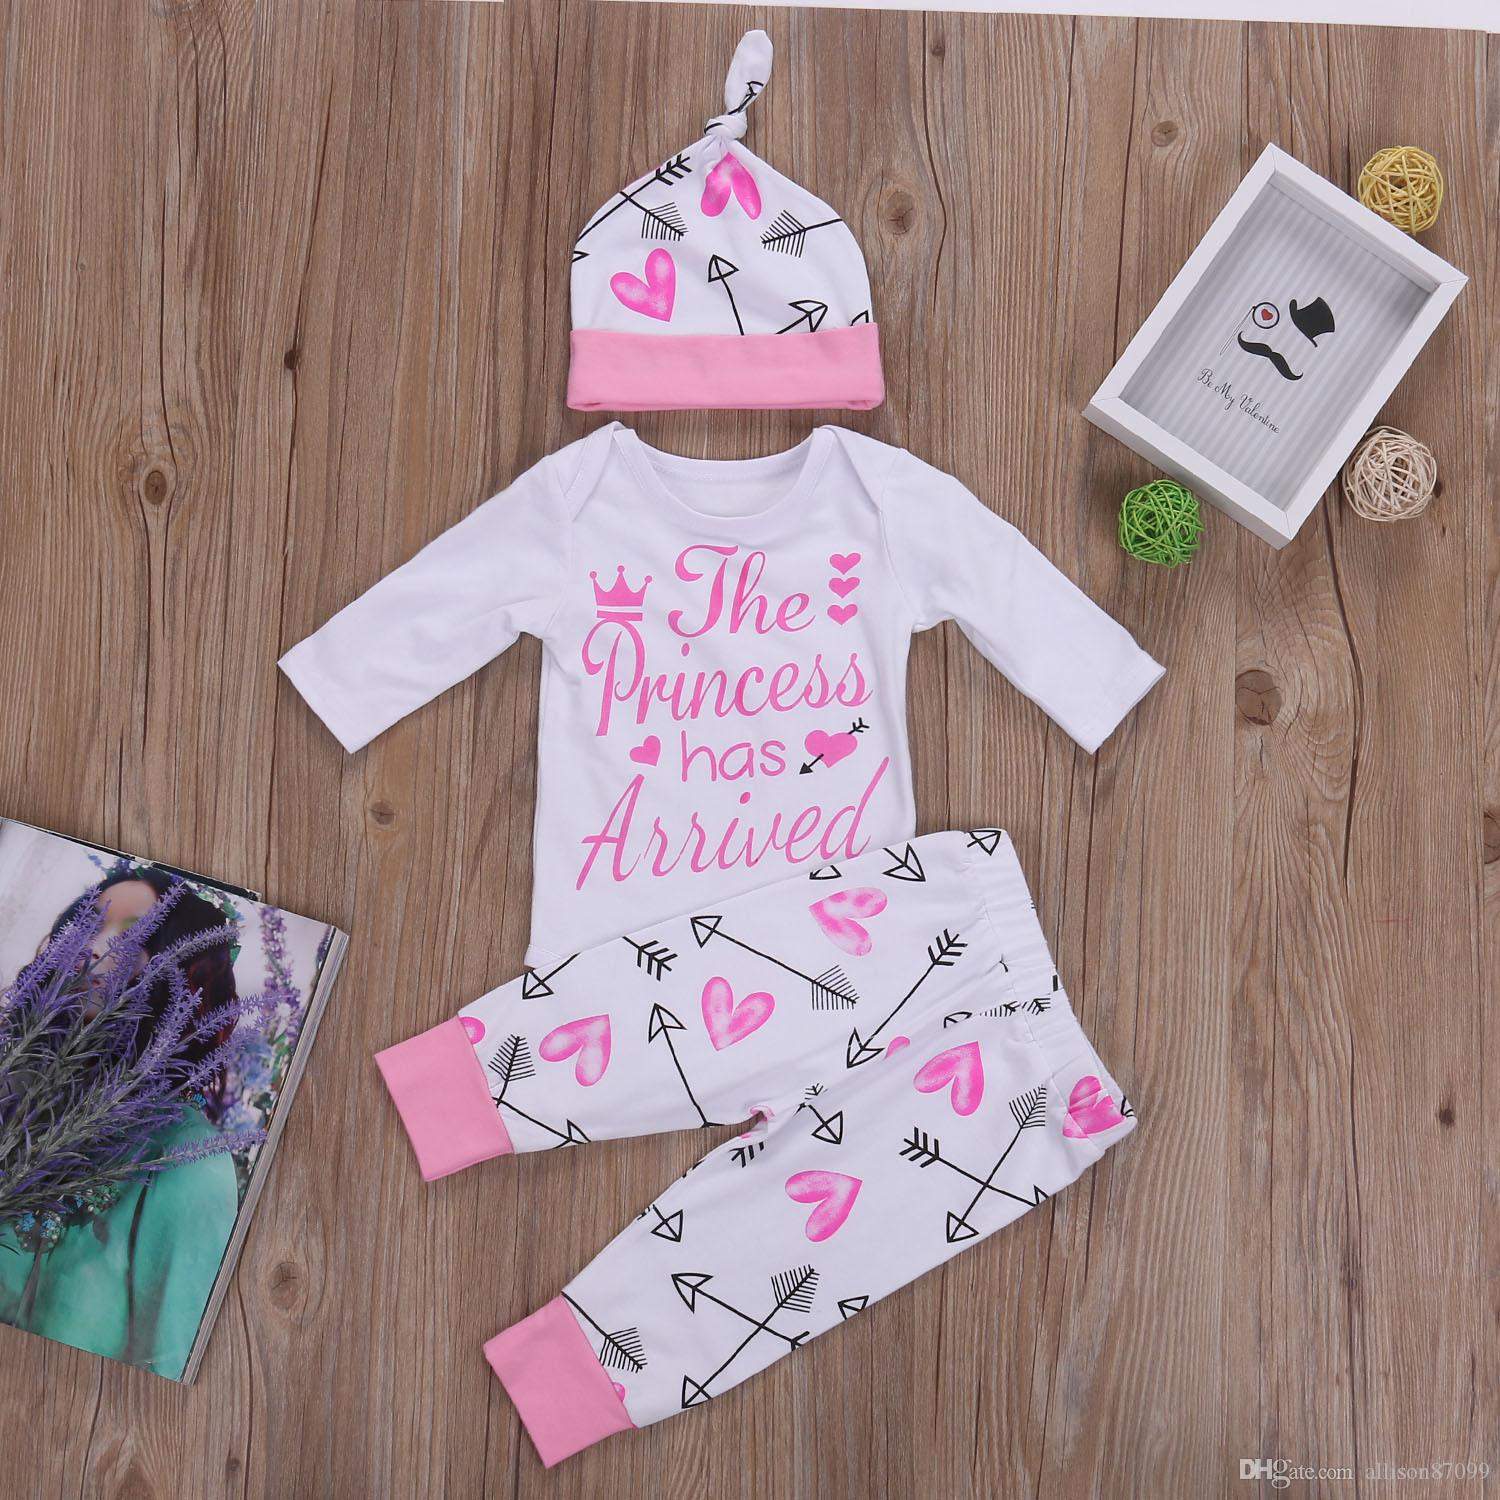 0183a9aea152 2019 Baby Girls Outfits Newborn Autumn Arrow Sweet Heart Letters The  Princess Has Arrived Romper + Pant With Hat 100%cotton 2017 New From  Allison87099